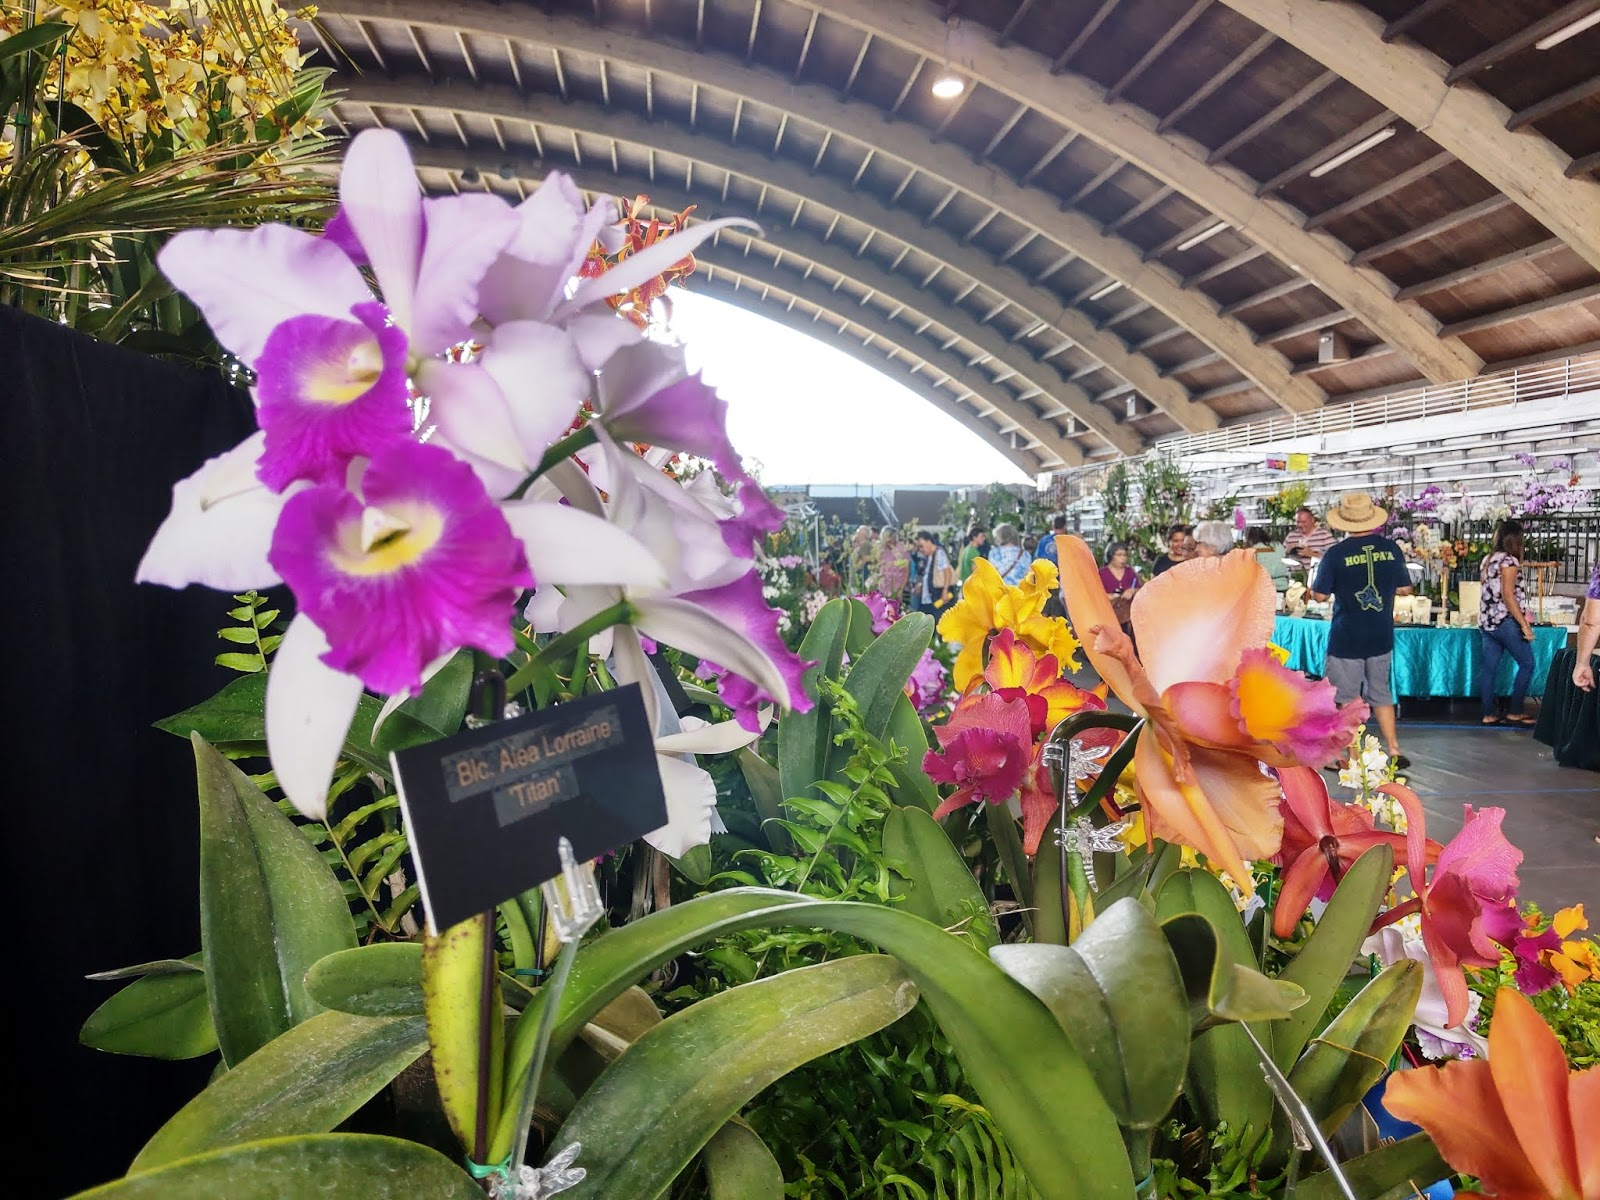 All hawaii news a good year for flowers honolulu police sport body a good year for flowers honolulu police sport body cams big island lava recovery now has 670m price tag politics continue after primary election izmirmasajfo